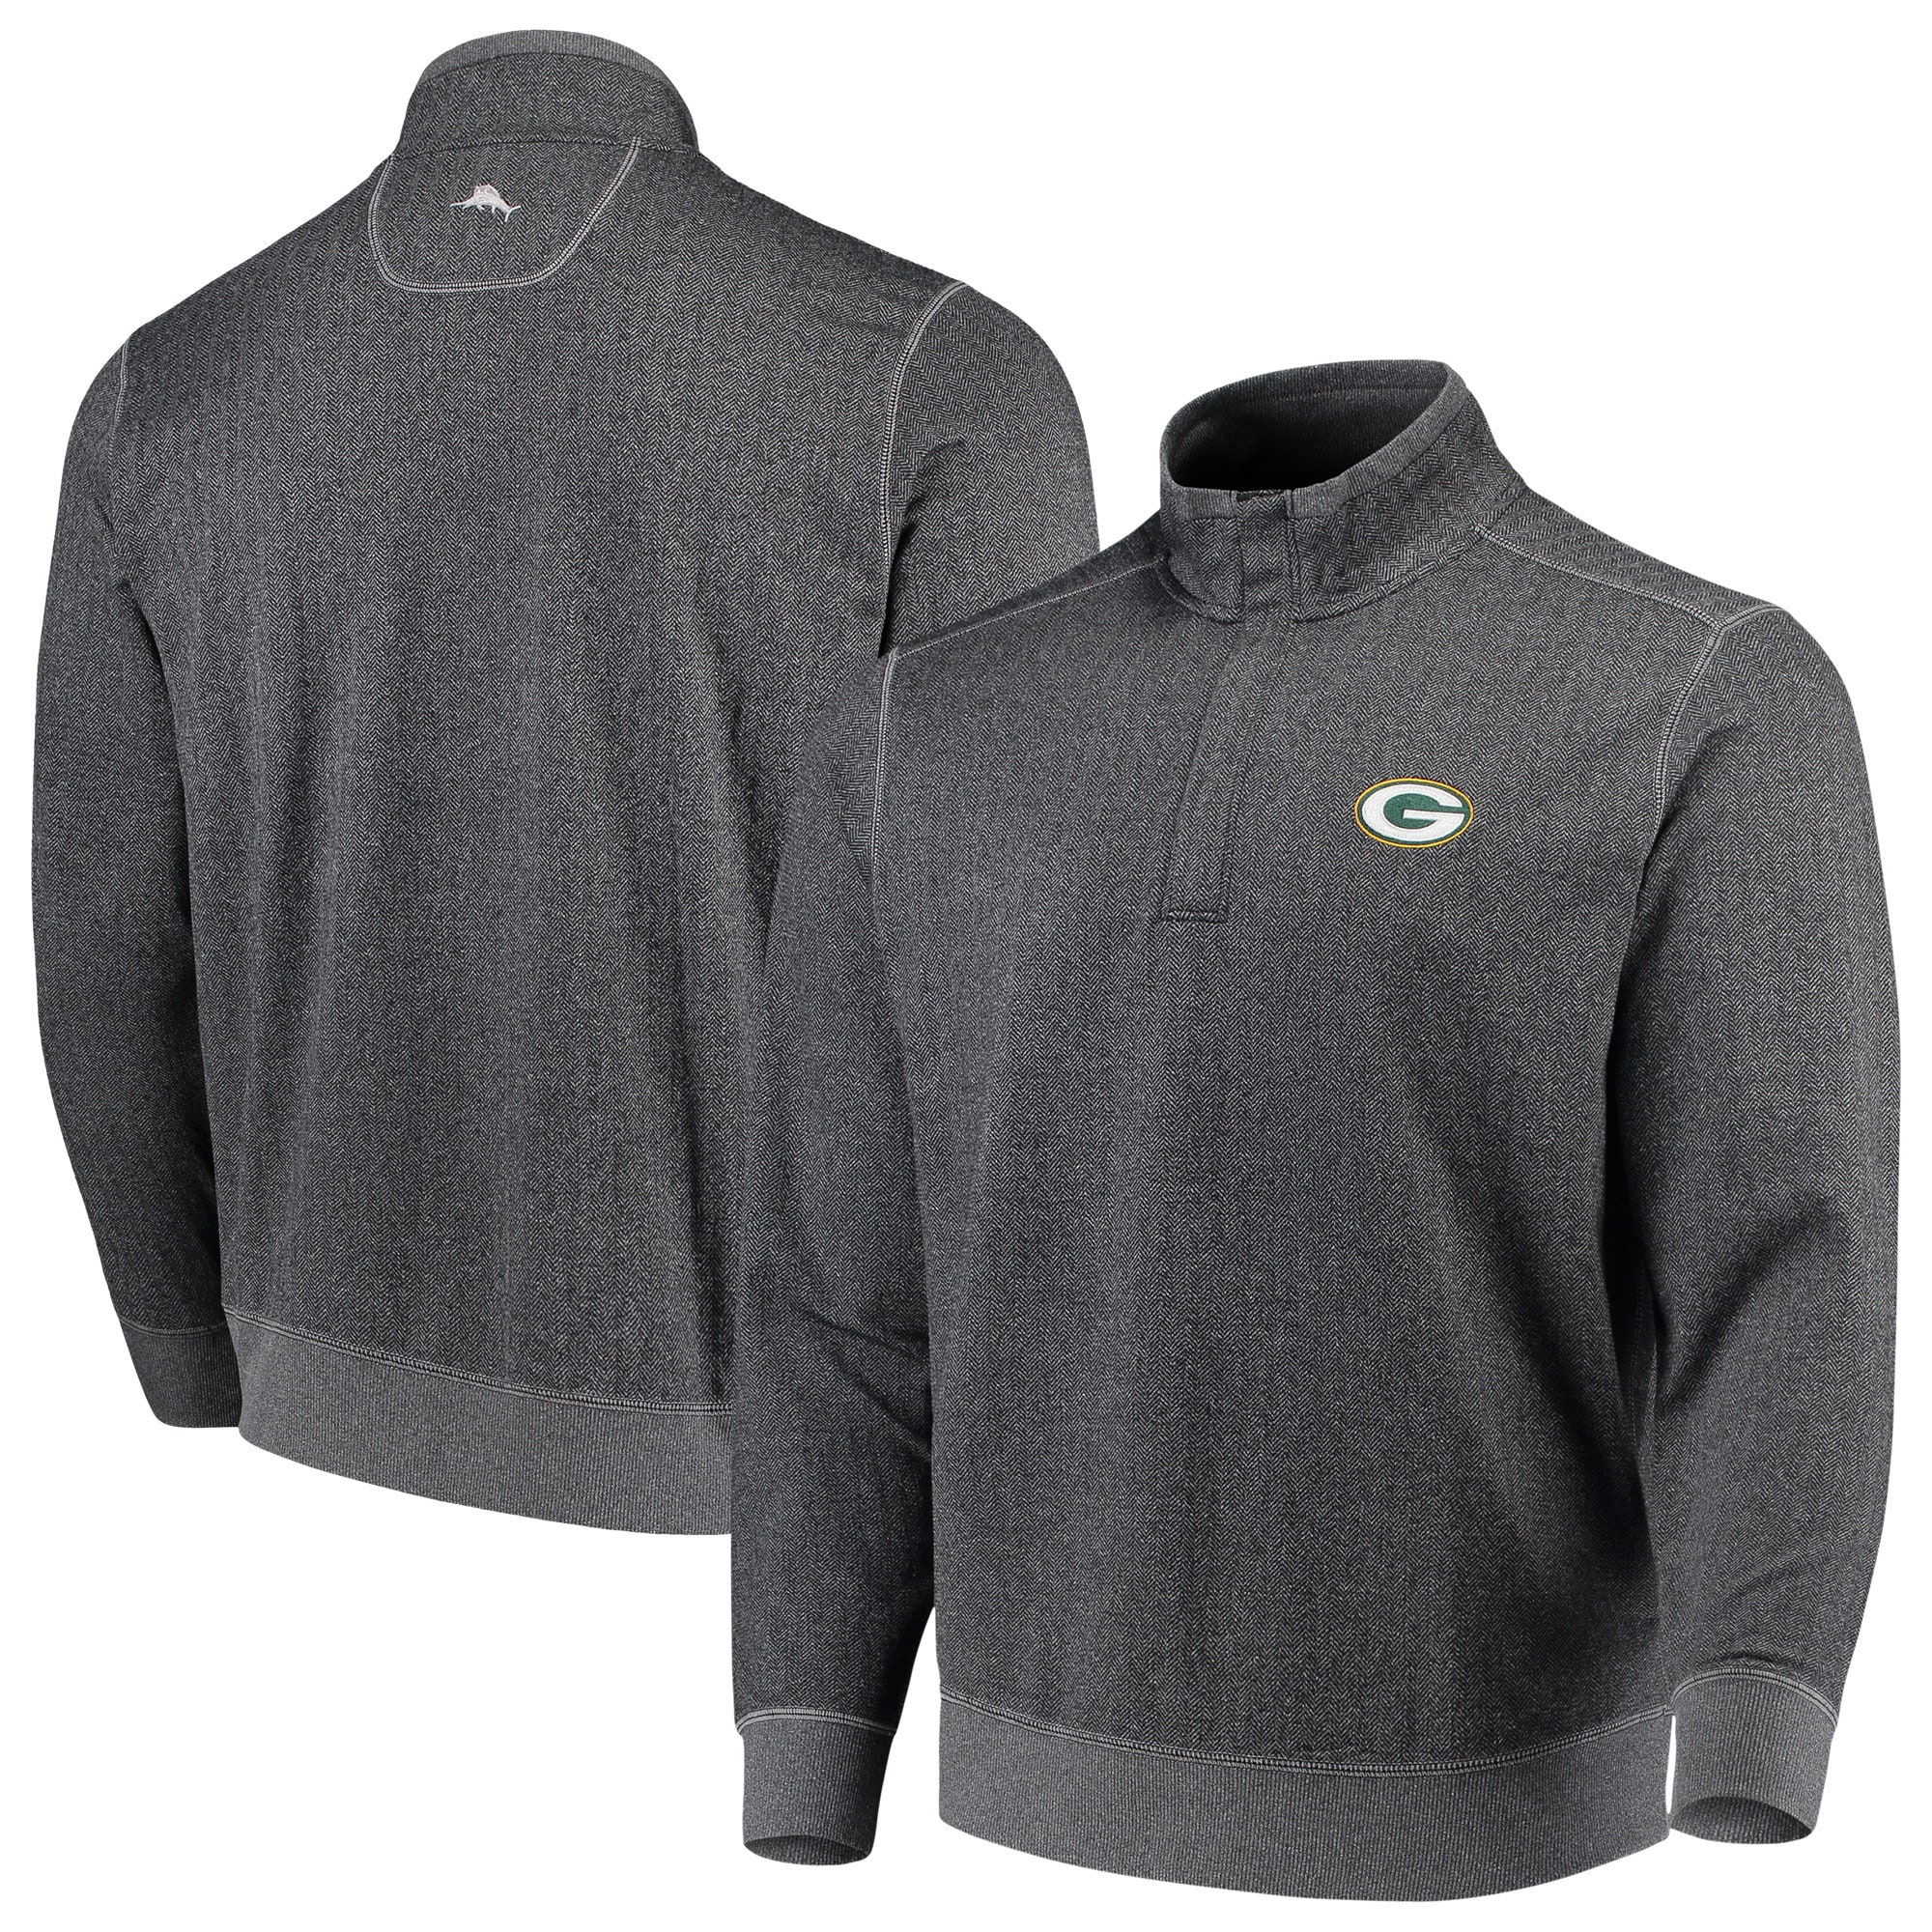 Green Bay Packers Tommy Bahama ProFormance Half-Zip Pullover Jacket - Heathered Charcoal